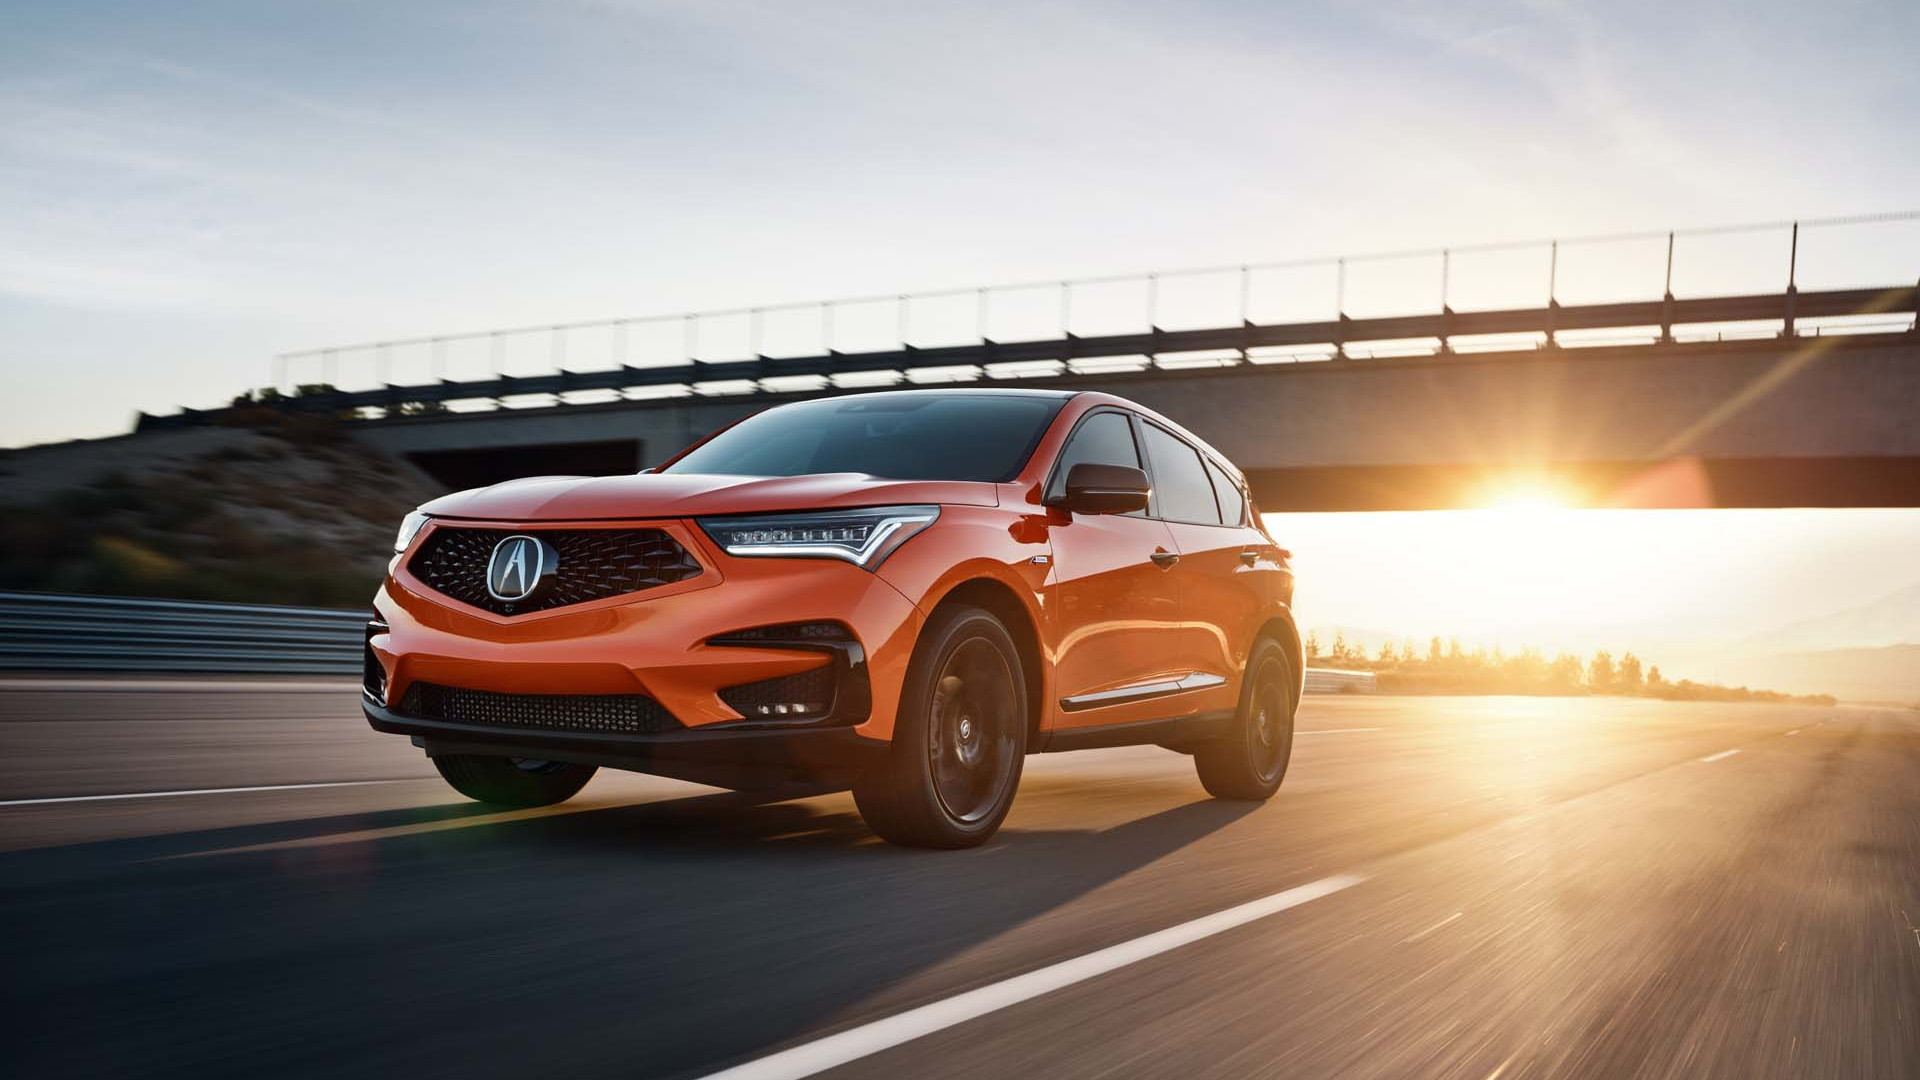 2021 Acura Rdx Pmc Edition Arrives With Nsx S Thermal Orange Paint 52 995 Price Tag